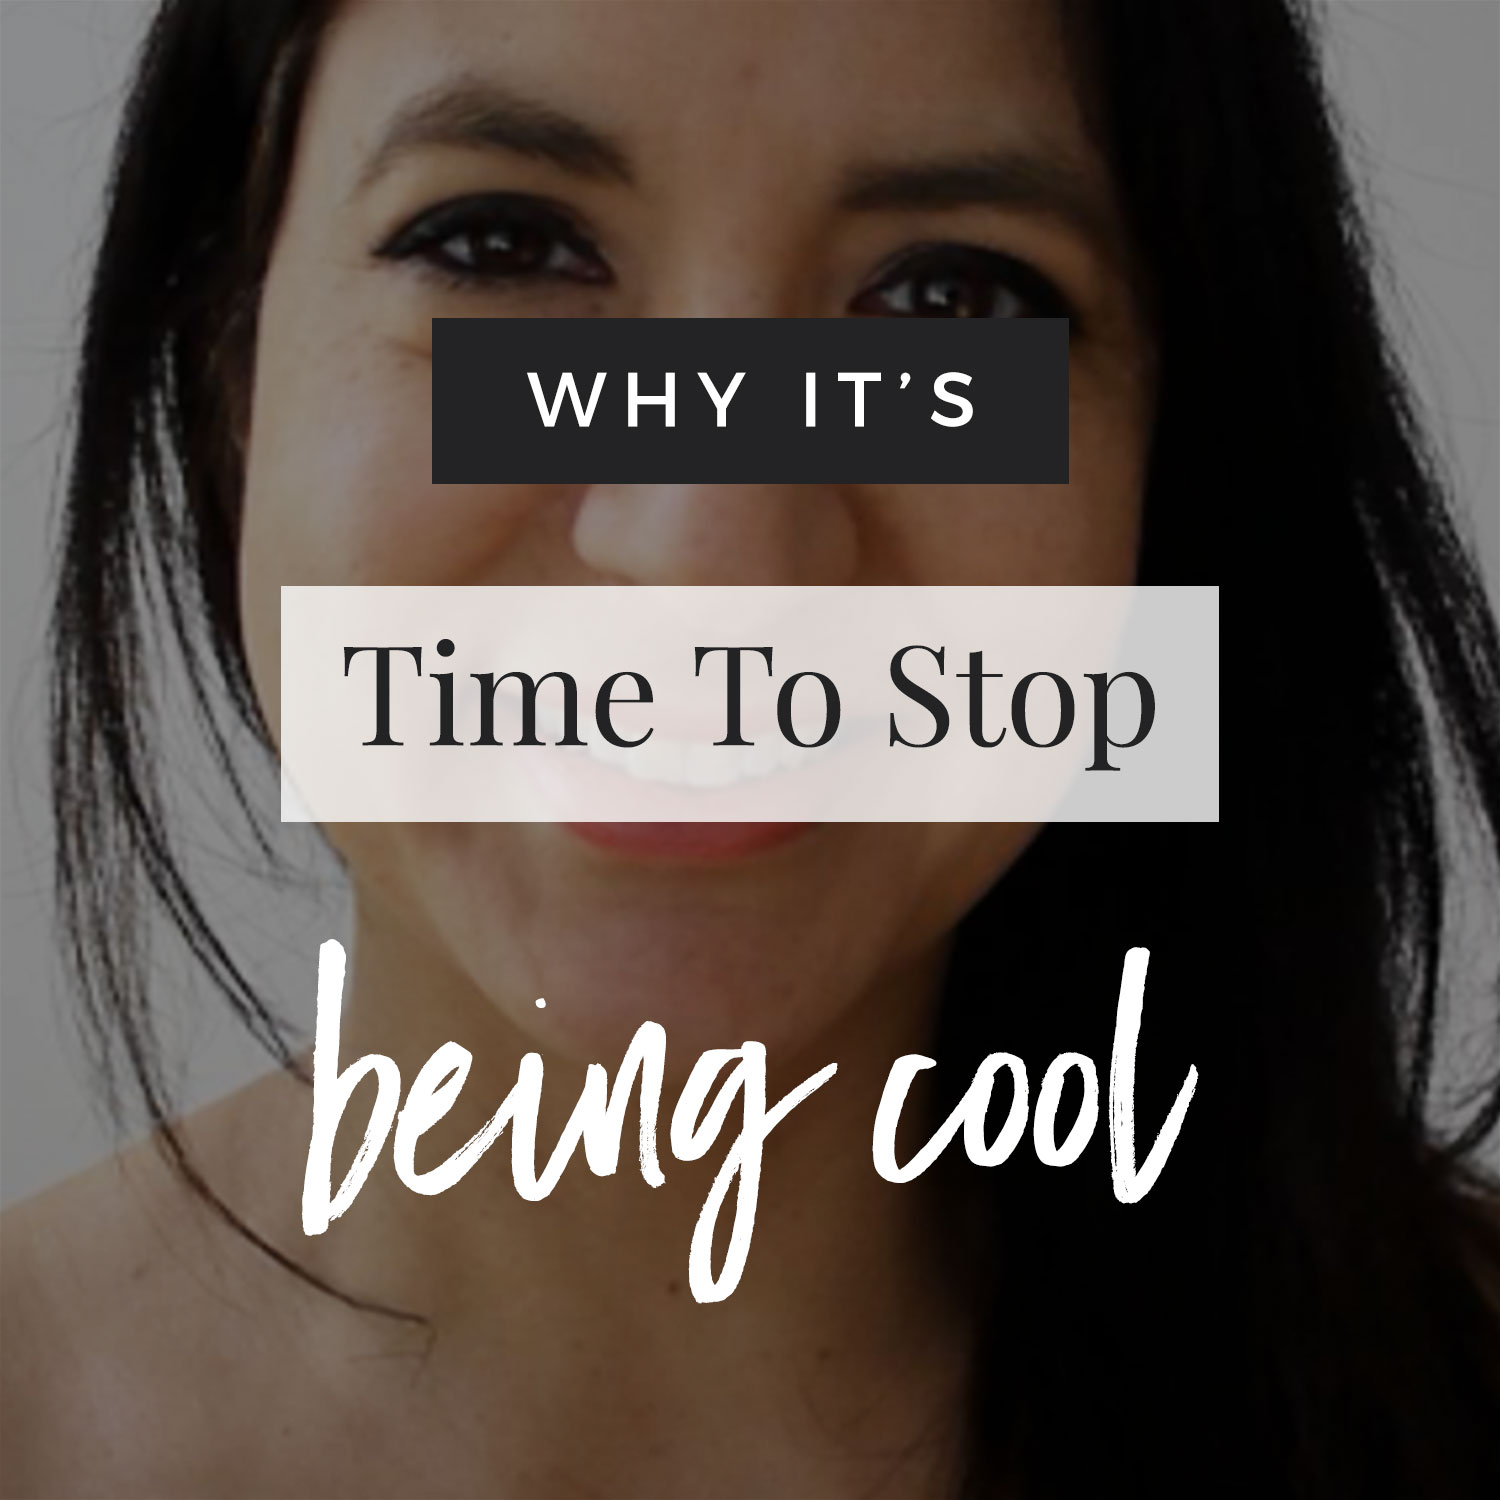 VIDEO: Why It's Time To Stop Being Cool